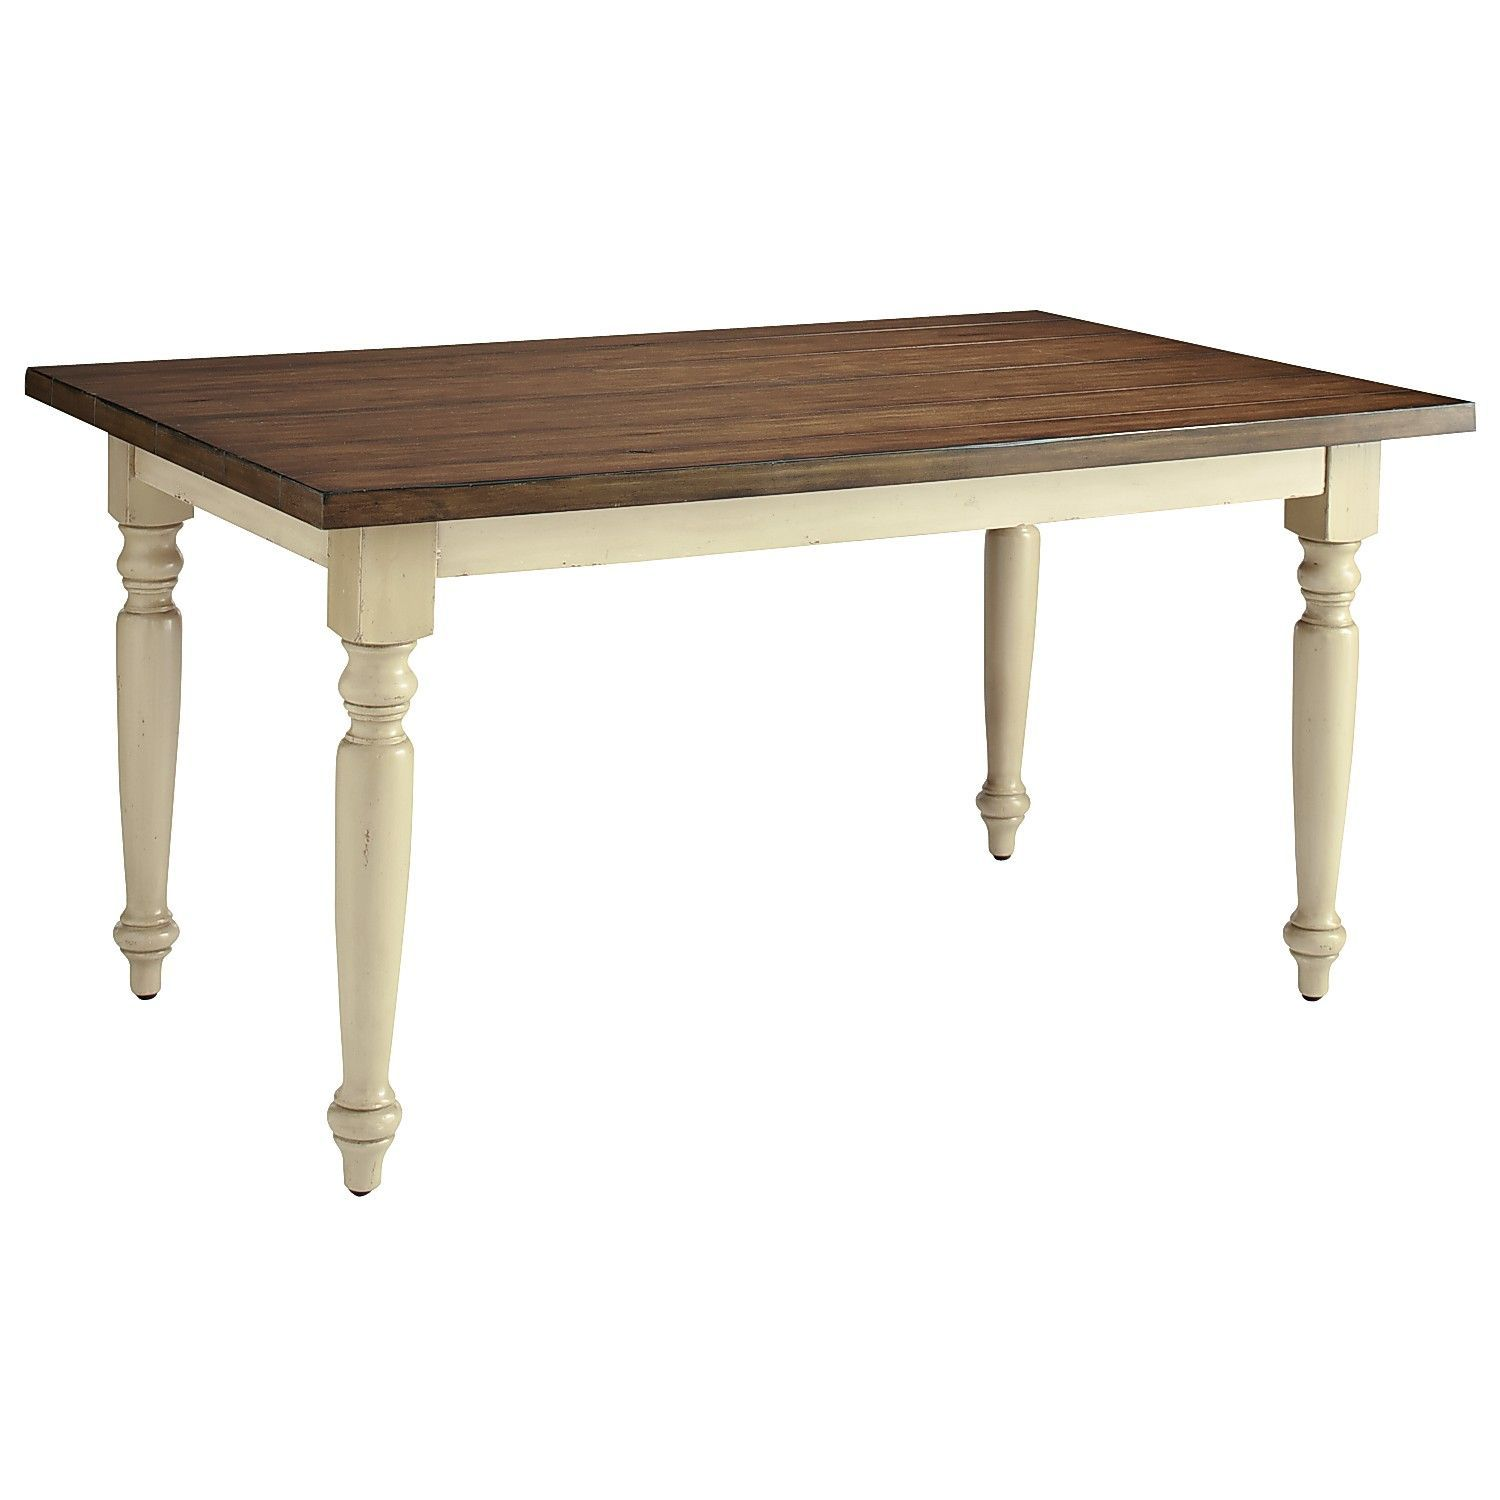 Pier 1: Carmichael Turned Leg Dining Table - Ivory ...